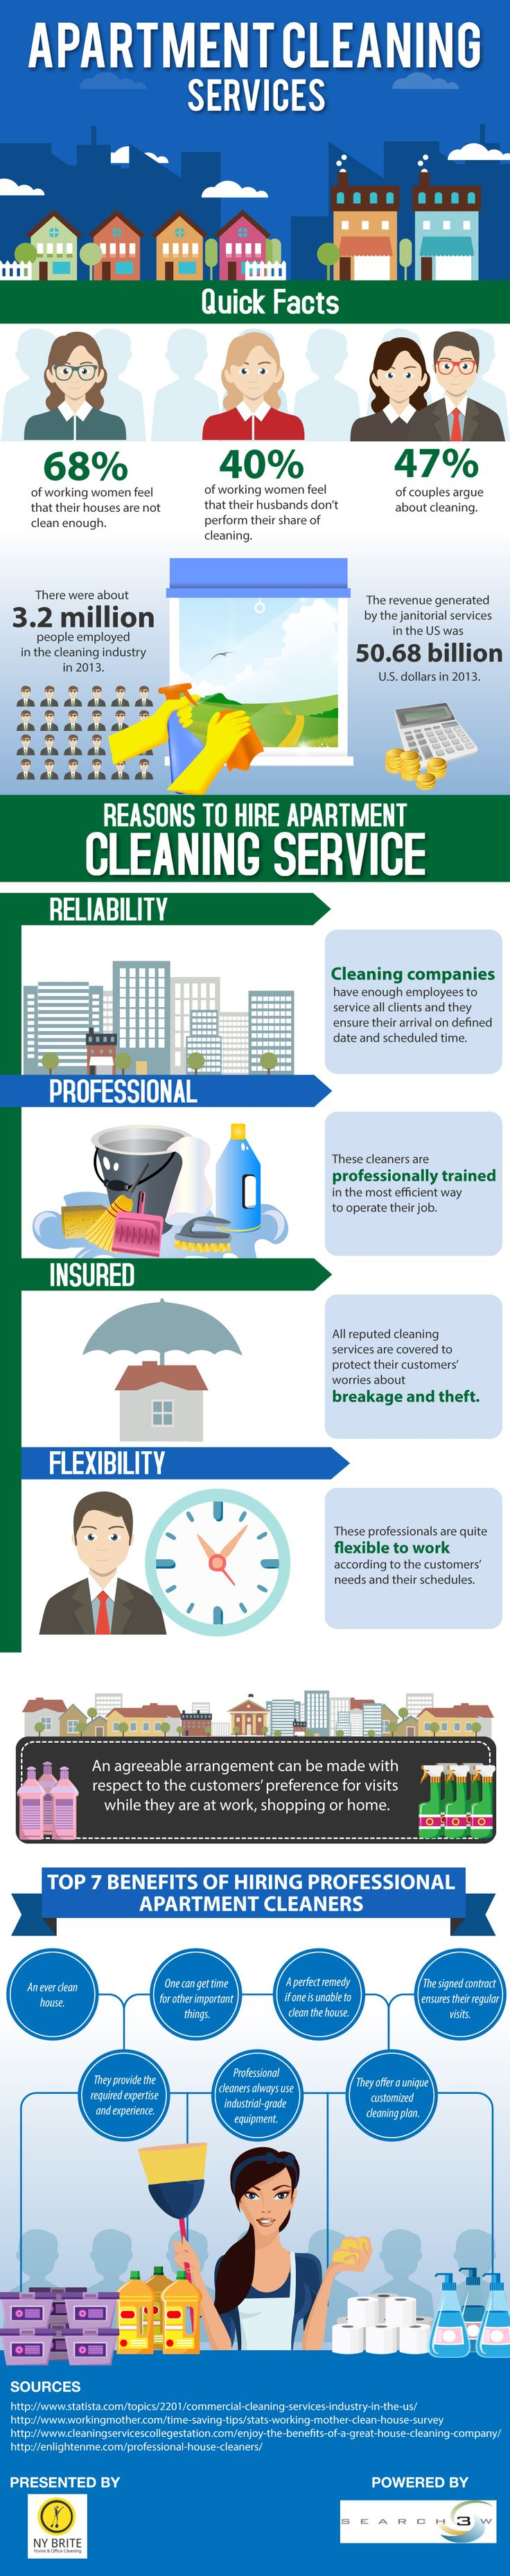 Know the reasons as to why should we hire apartment cleaning services. NY Brite cleaning company serving Manhattan people for more than 20 years presents an infographic to explain the reasons of the same.